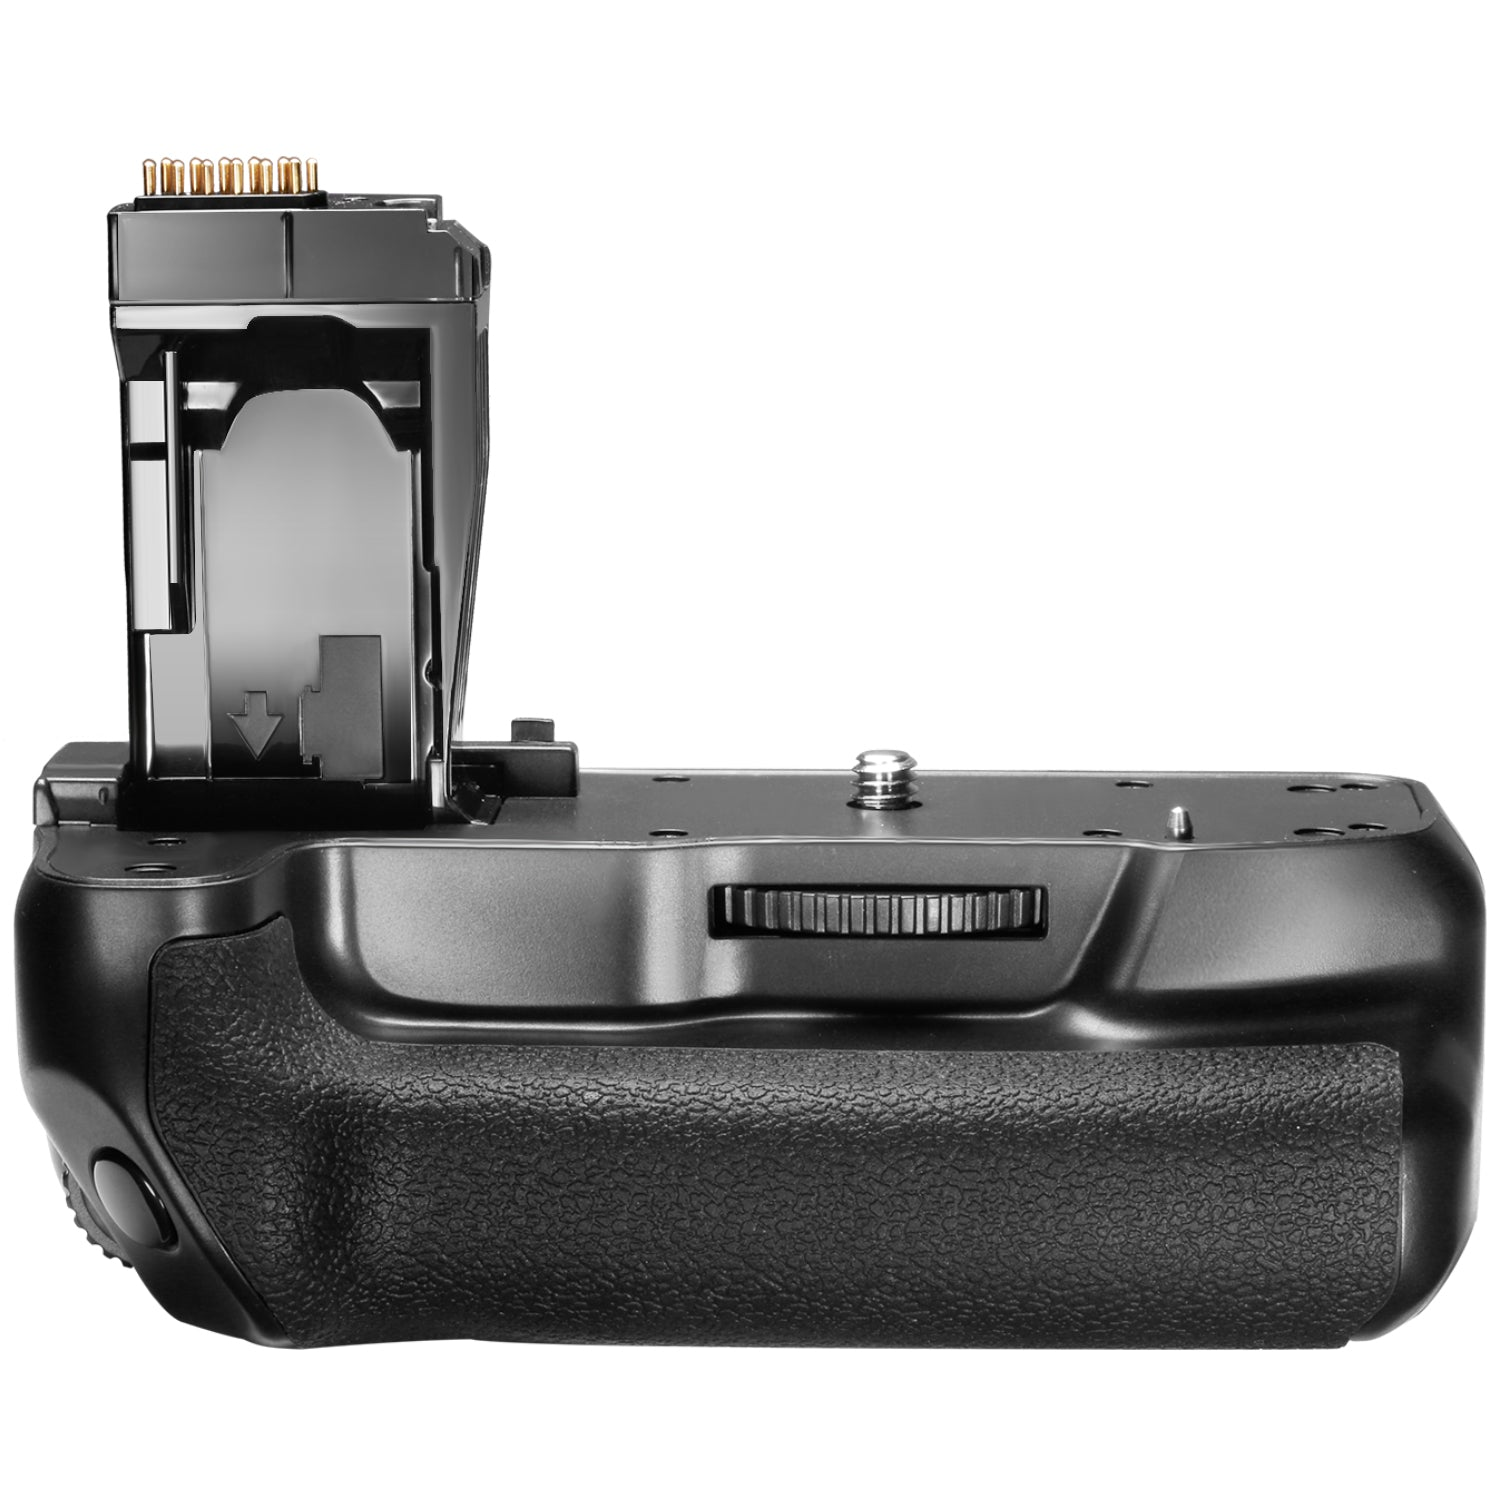 Rebel T6s EOS 760D KISS X8i,M3 Digital SLR Cameras Kastar Pro Vertical Battery Grip EOS 750D for Canon EOS Rebel T6i EOS 8000D Replacement for BG-E18